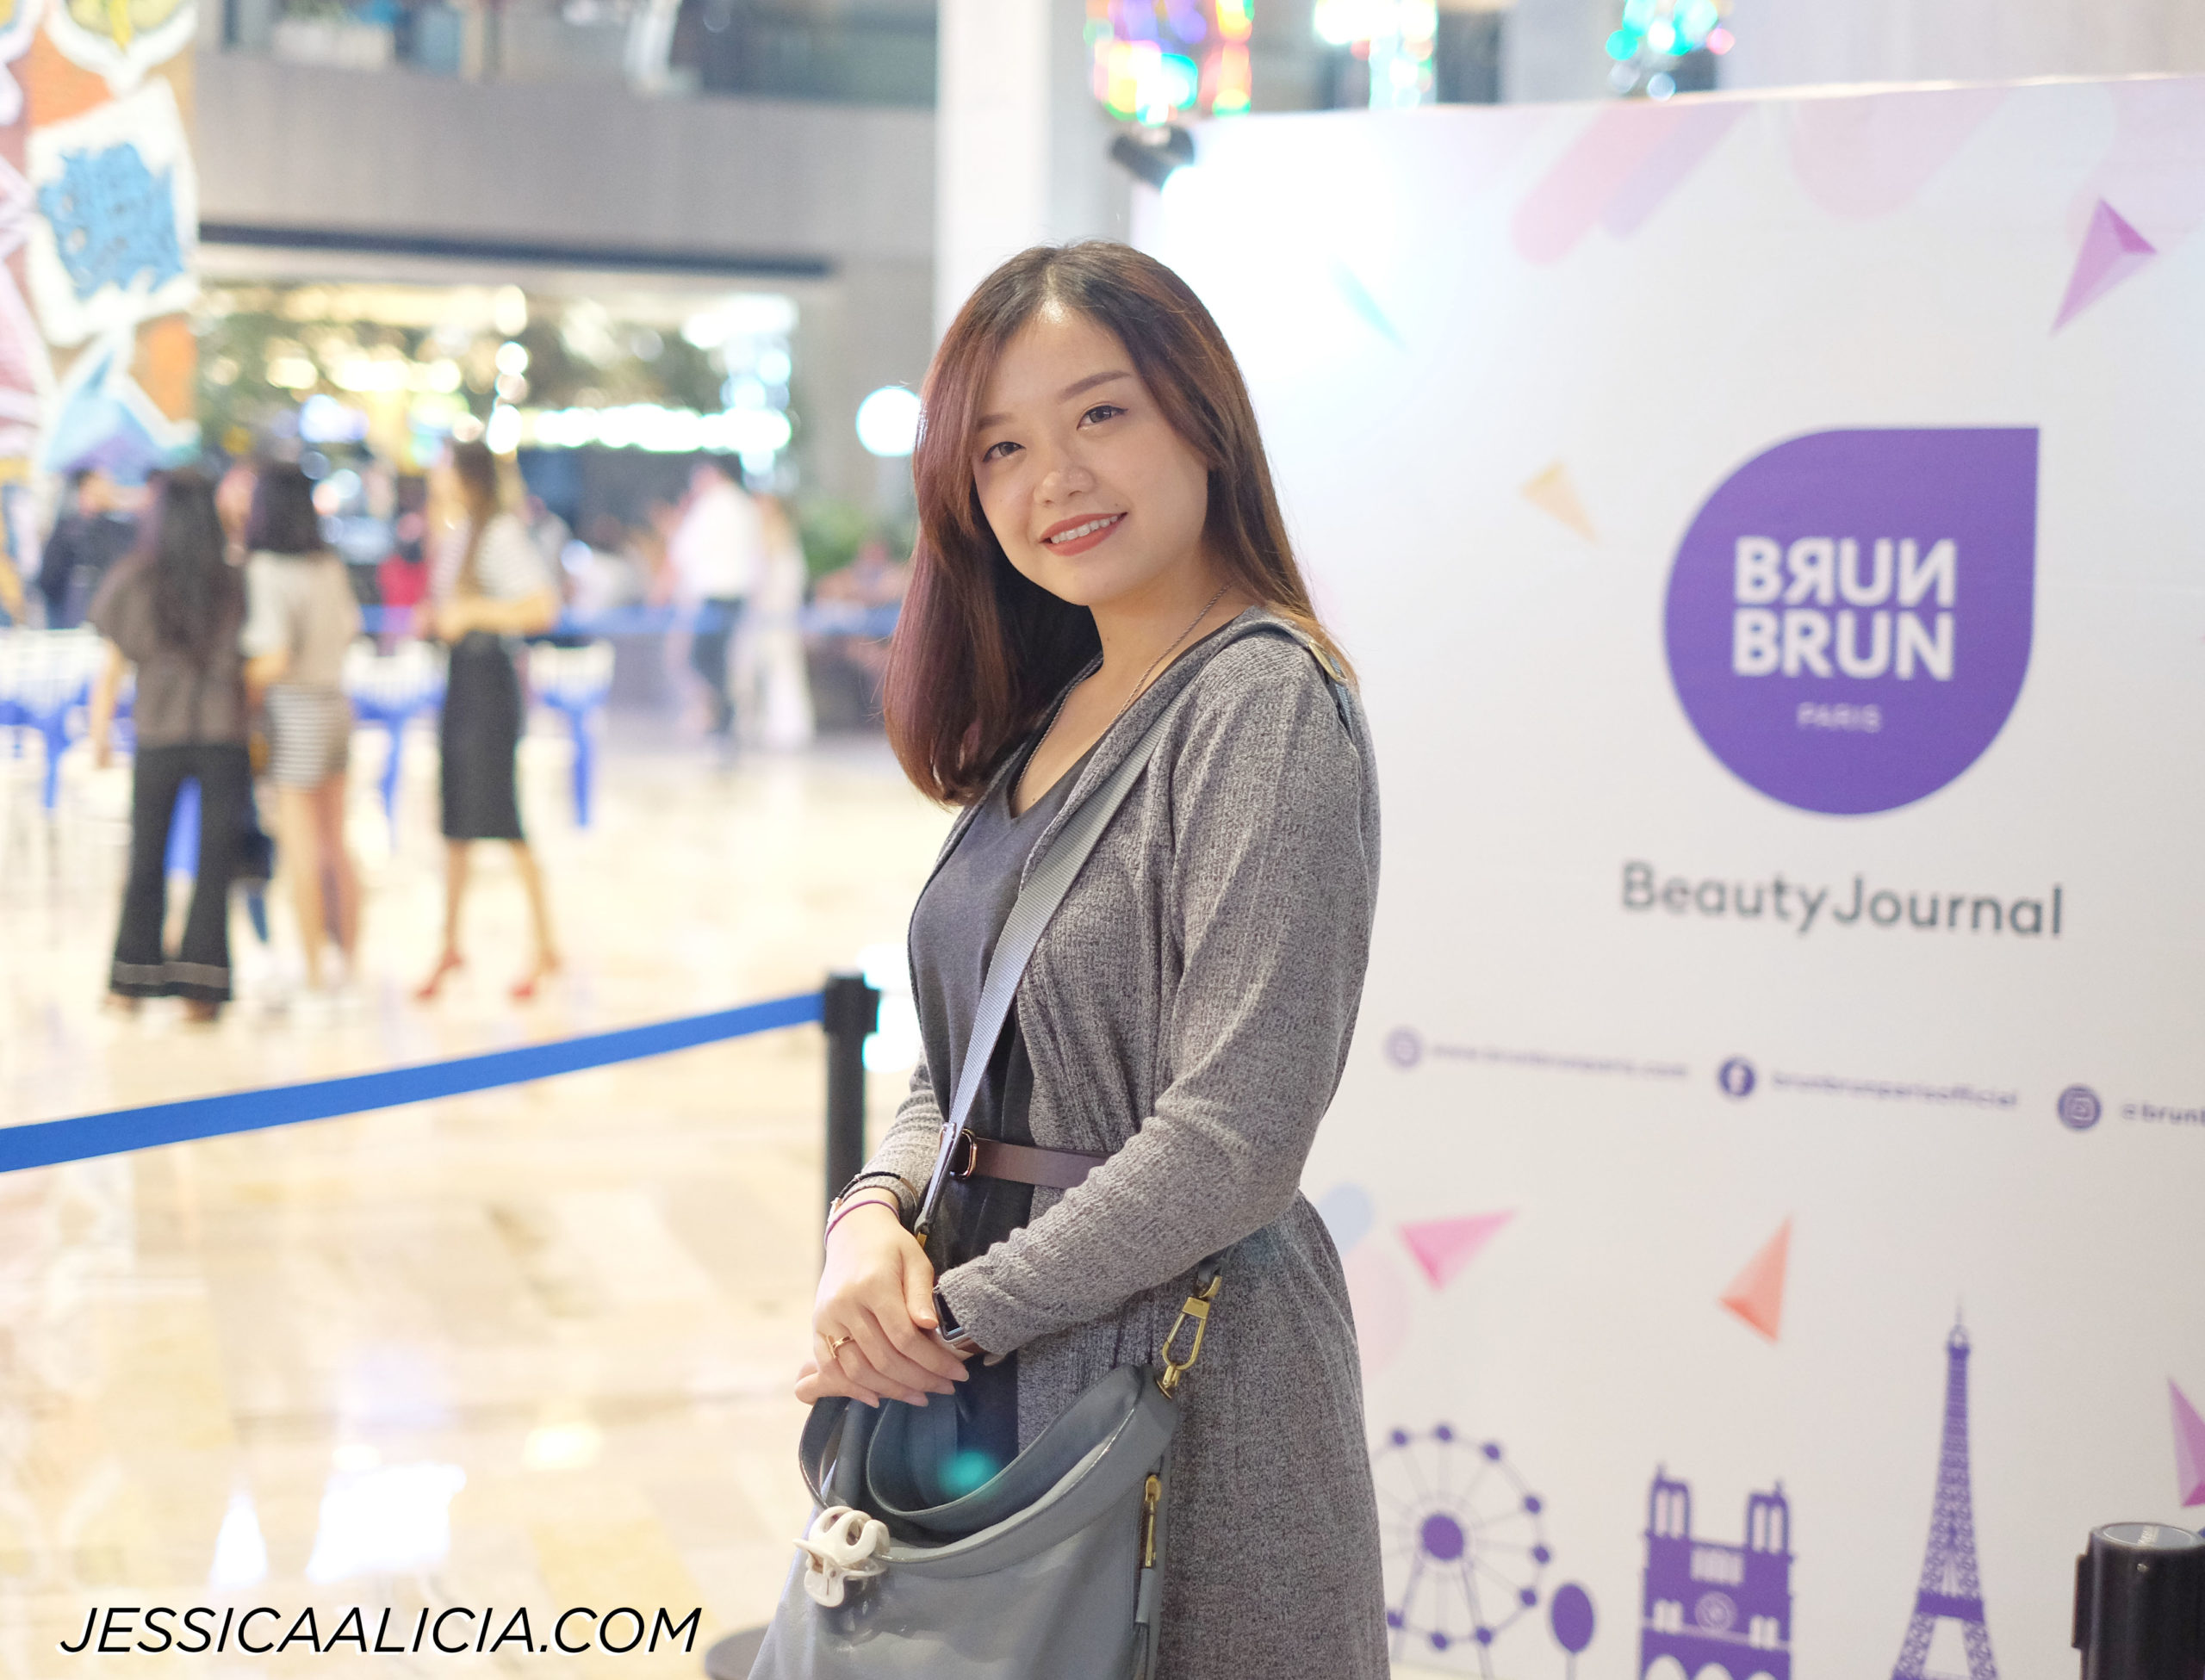 Event Report : Beauty Journal x BRUNBRUN Paris Roadshow – Parisienne Party Look